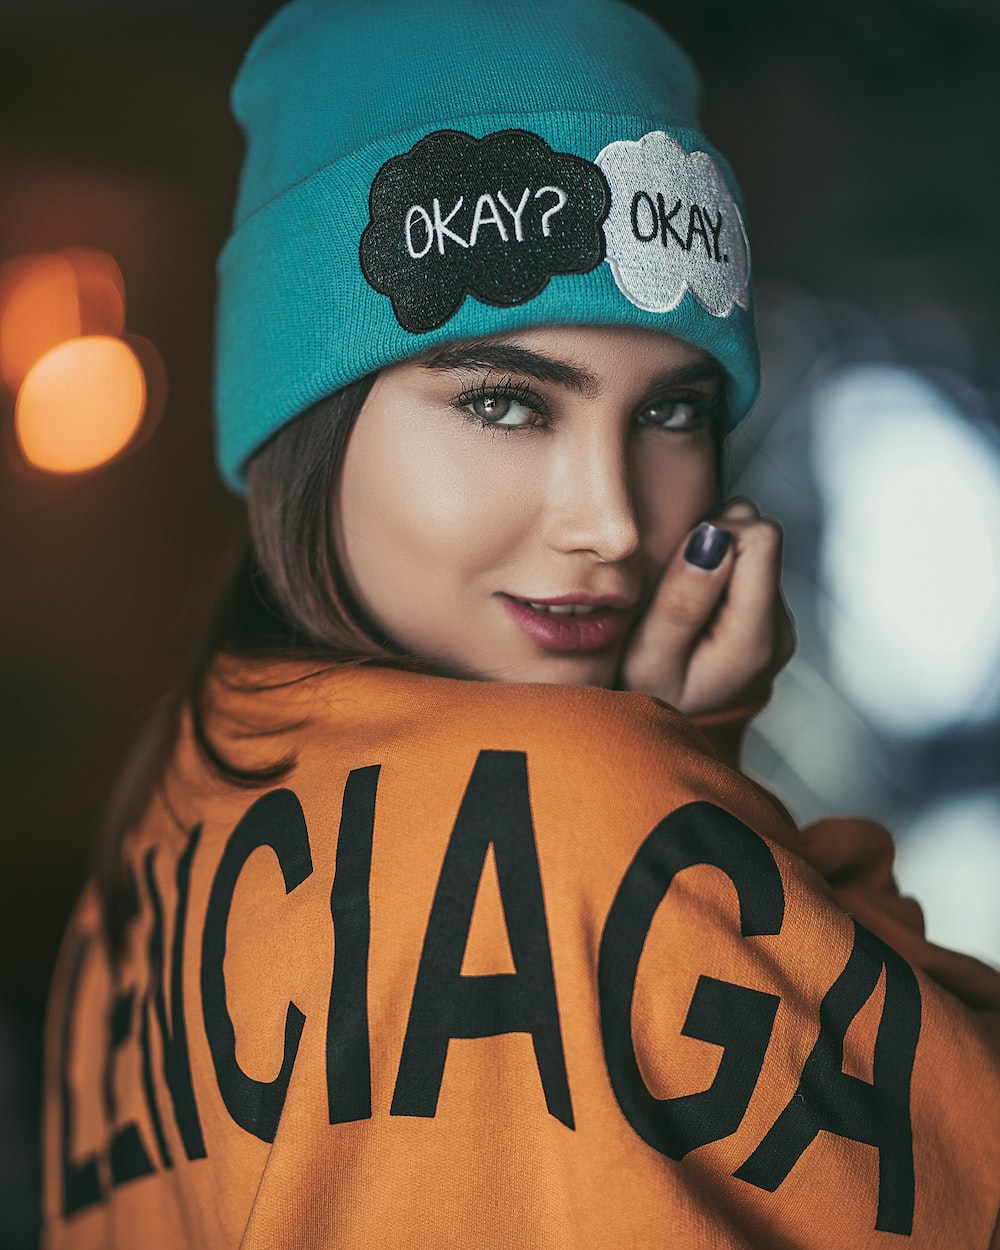 woman wearing orange and black sweater and teal beanie smiling